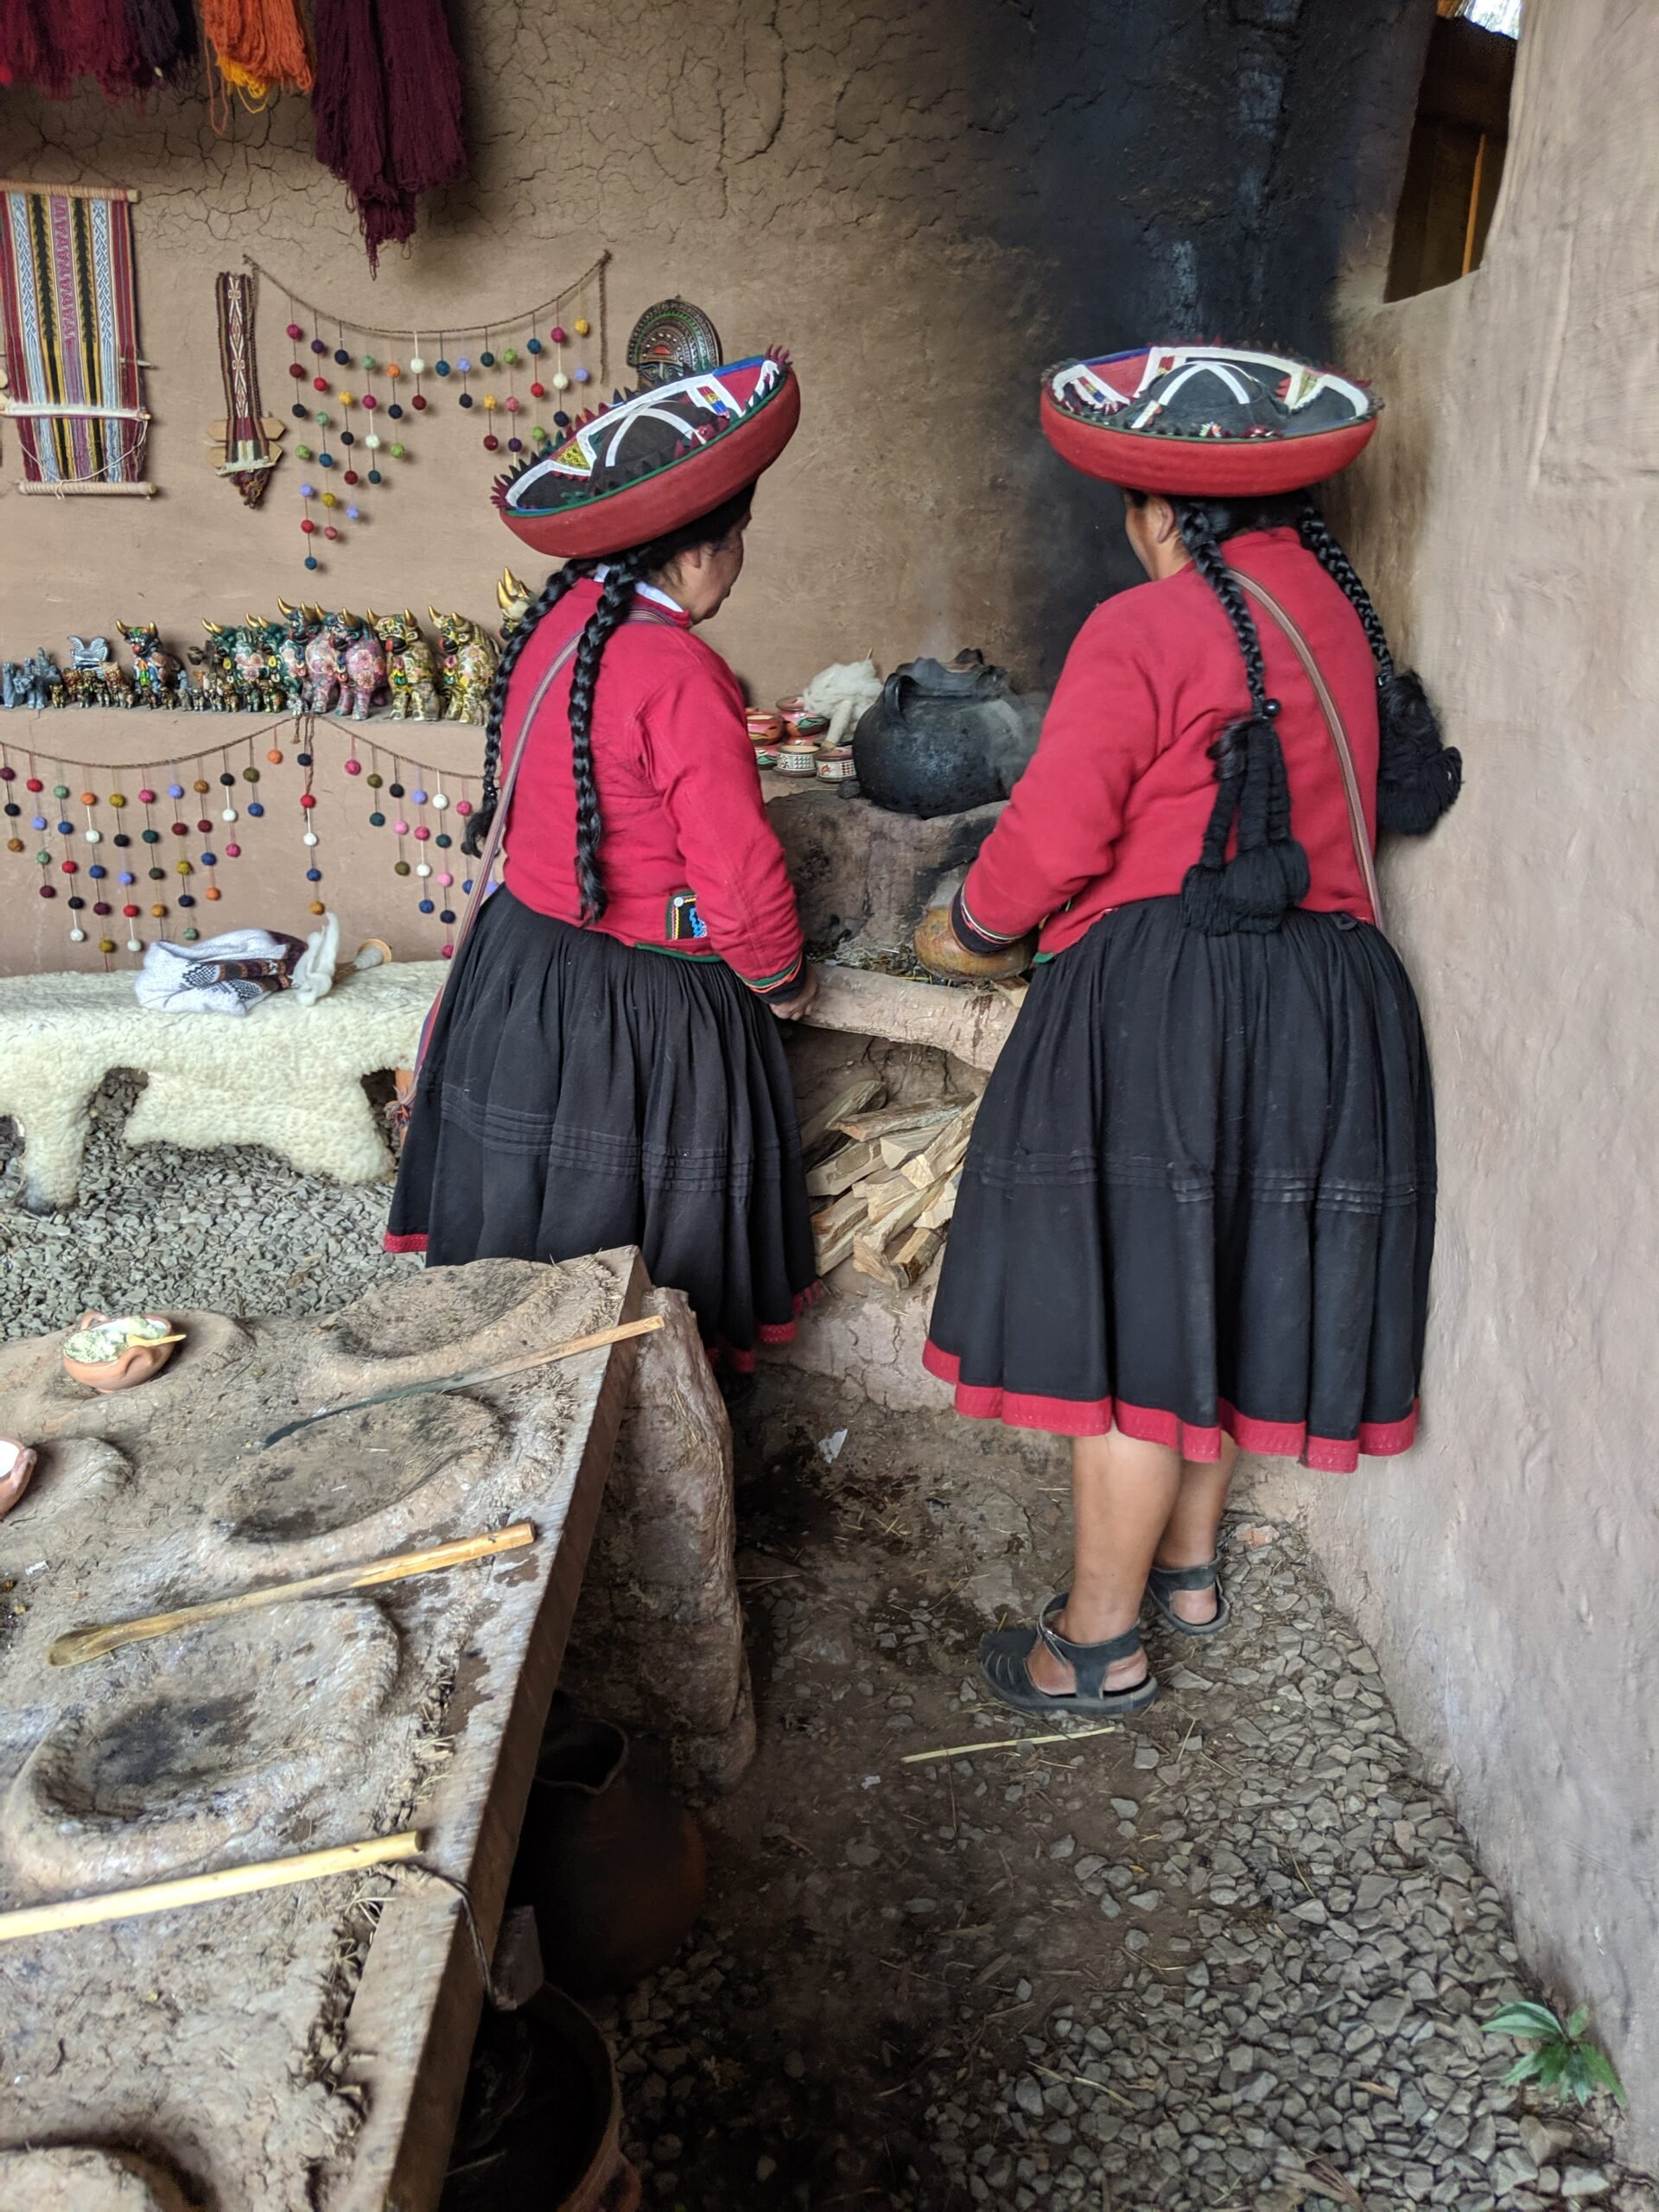 Peruvian women in traditional dress stoking a wood fired stove.